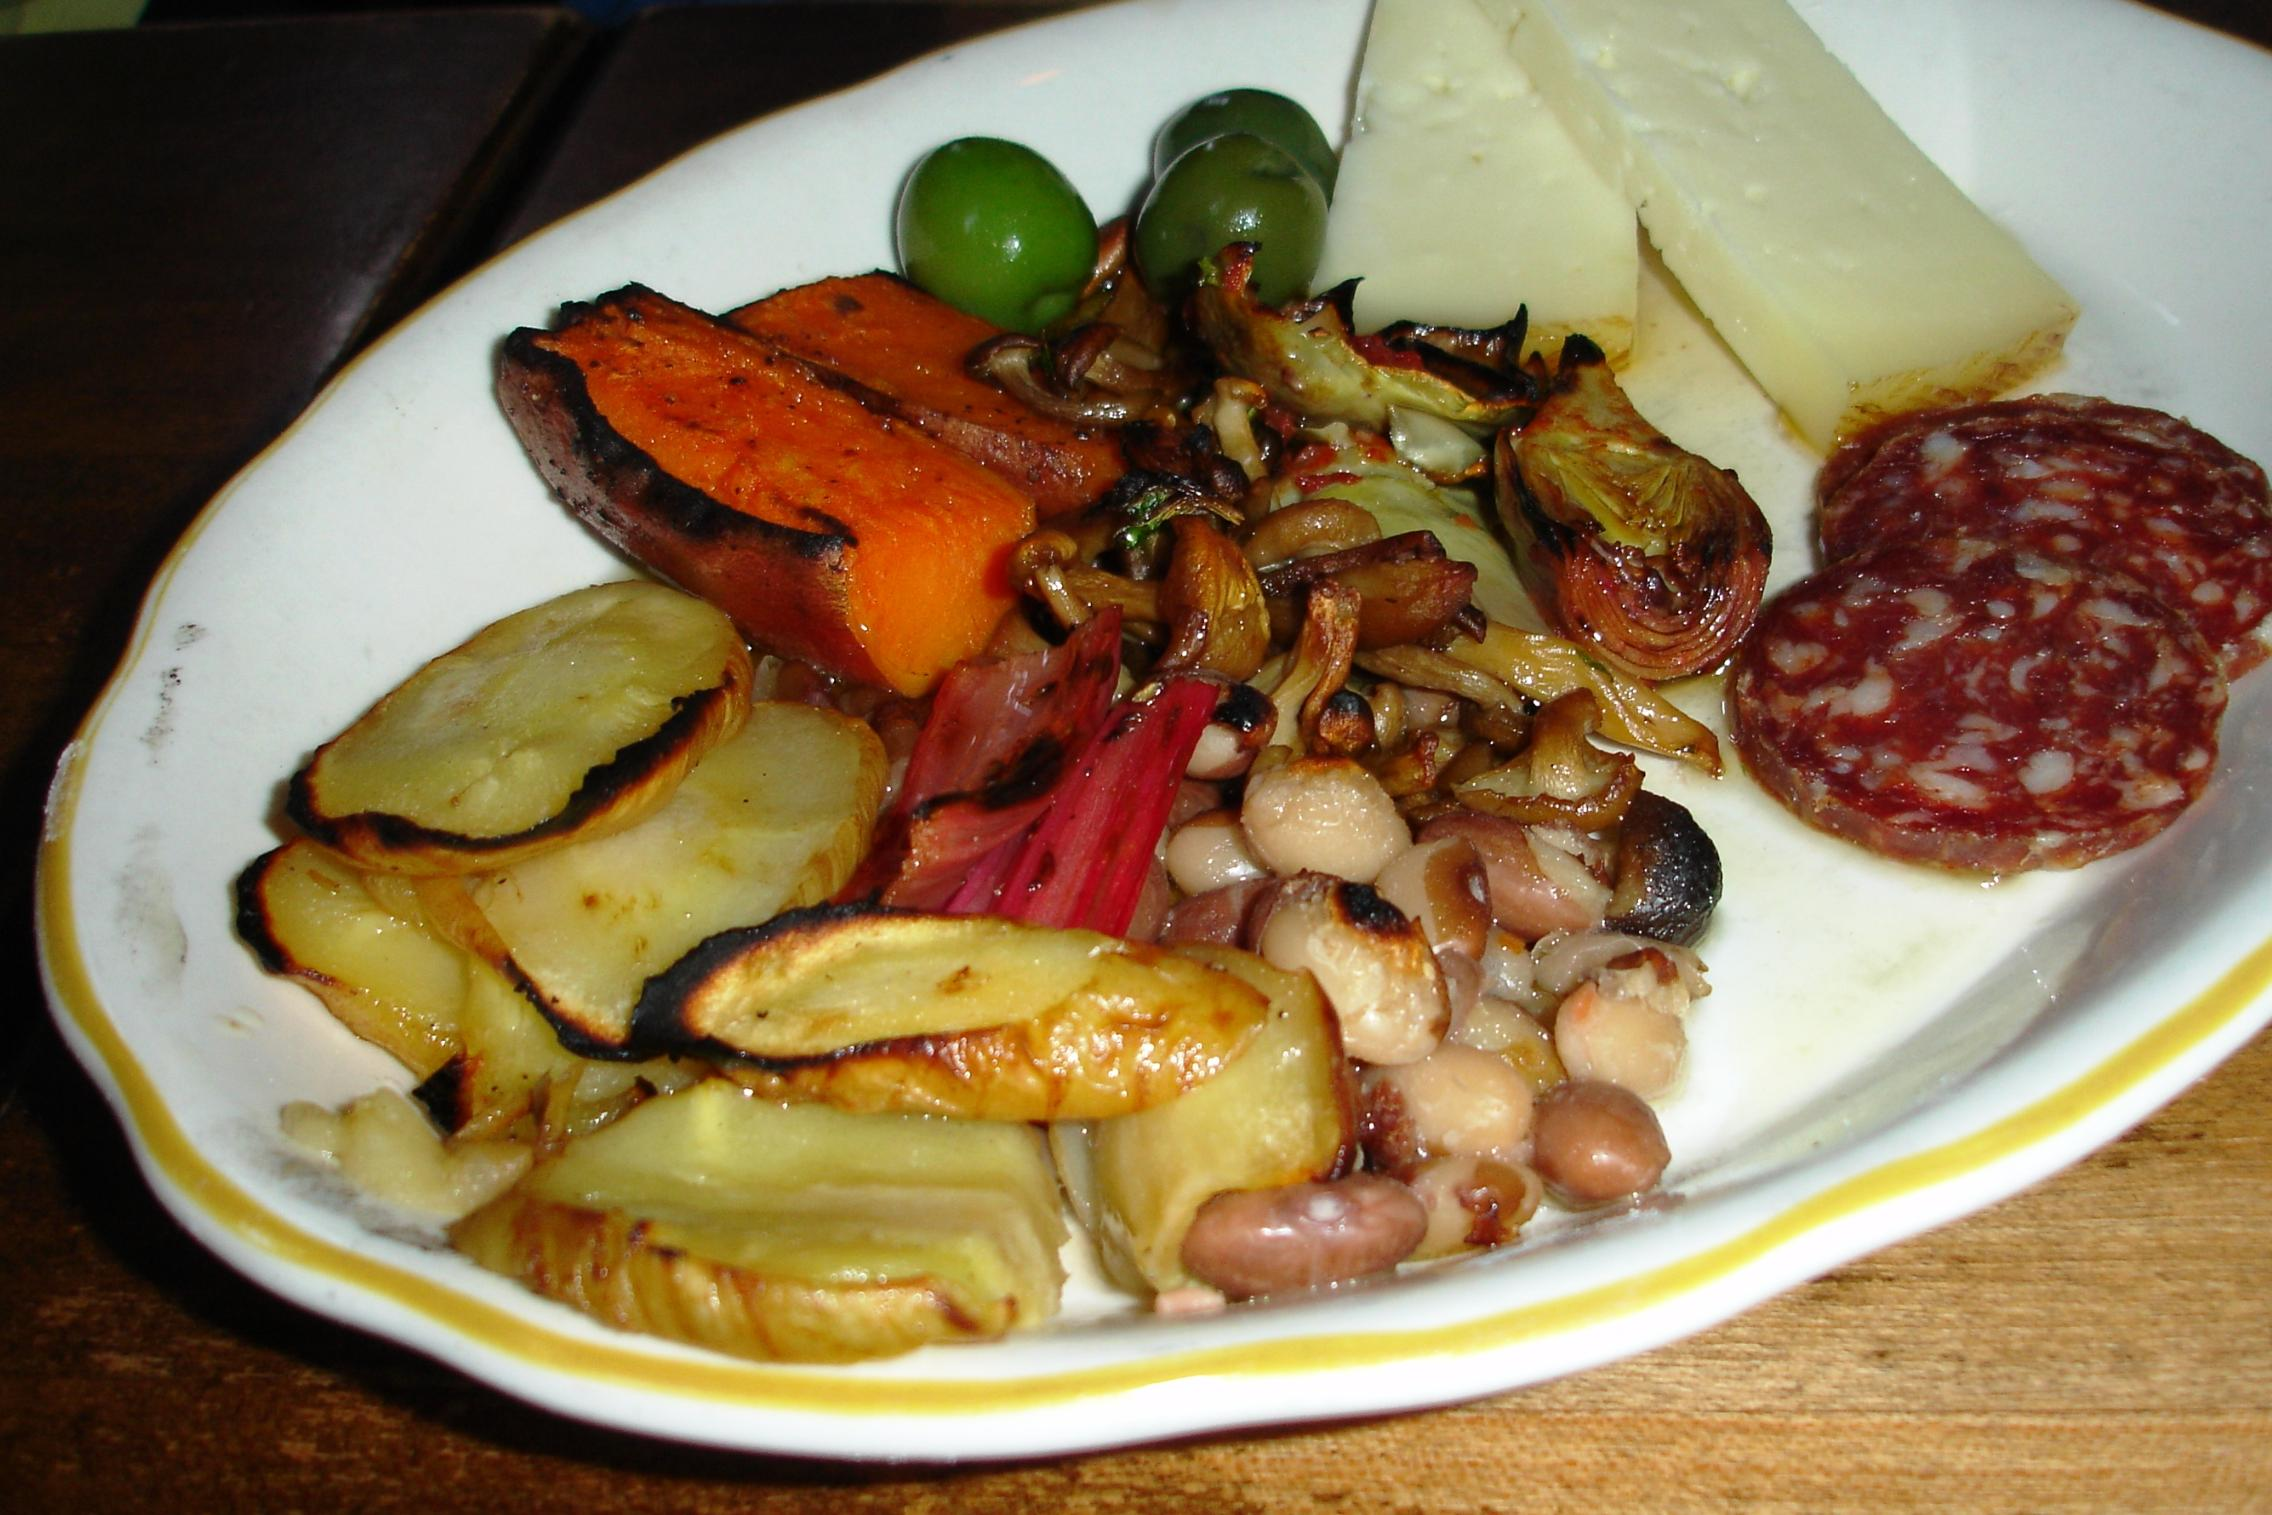 A selection of wood-roasted vegetables is featured on the antipasto plate.